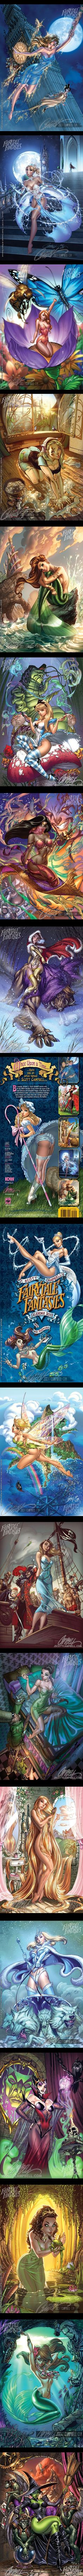 """Fairy Tale Fantasies"" is the new 2012 sexy calendar of the Disney Princesses Pin-Ups by the great illustrator J. Scott Campbell. Beautiful of course:"